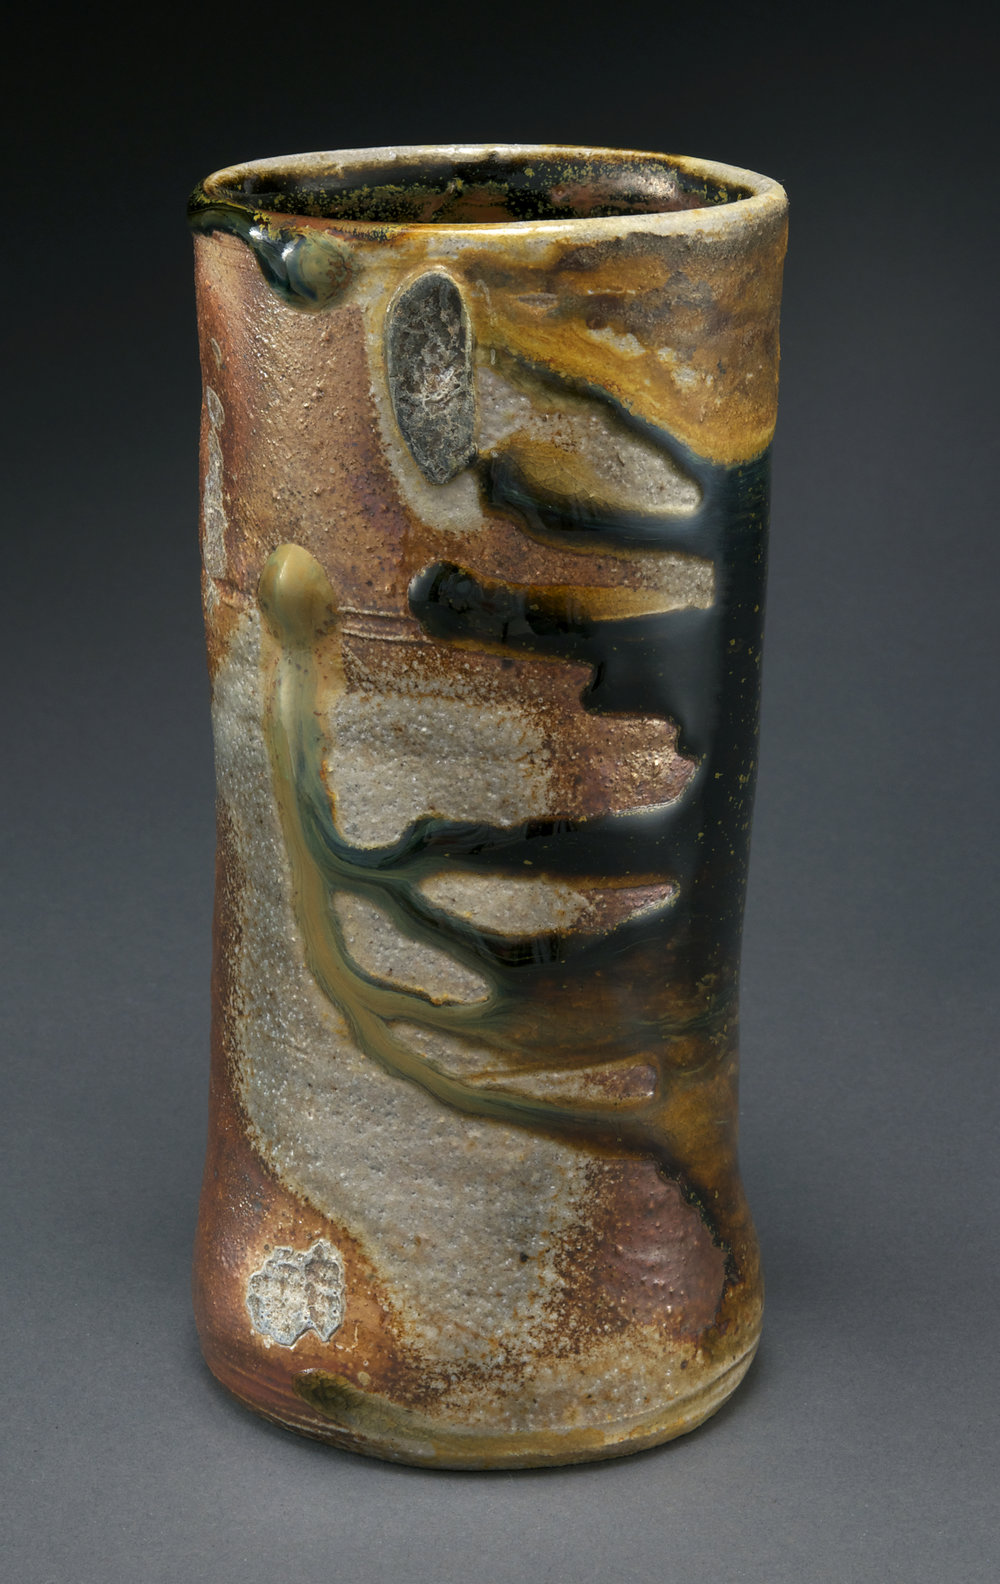 Cylinder vase with temmoku brown-1